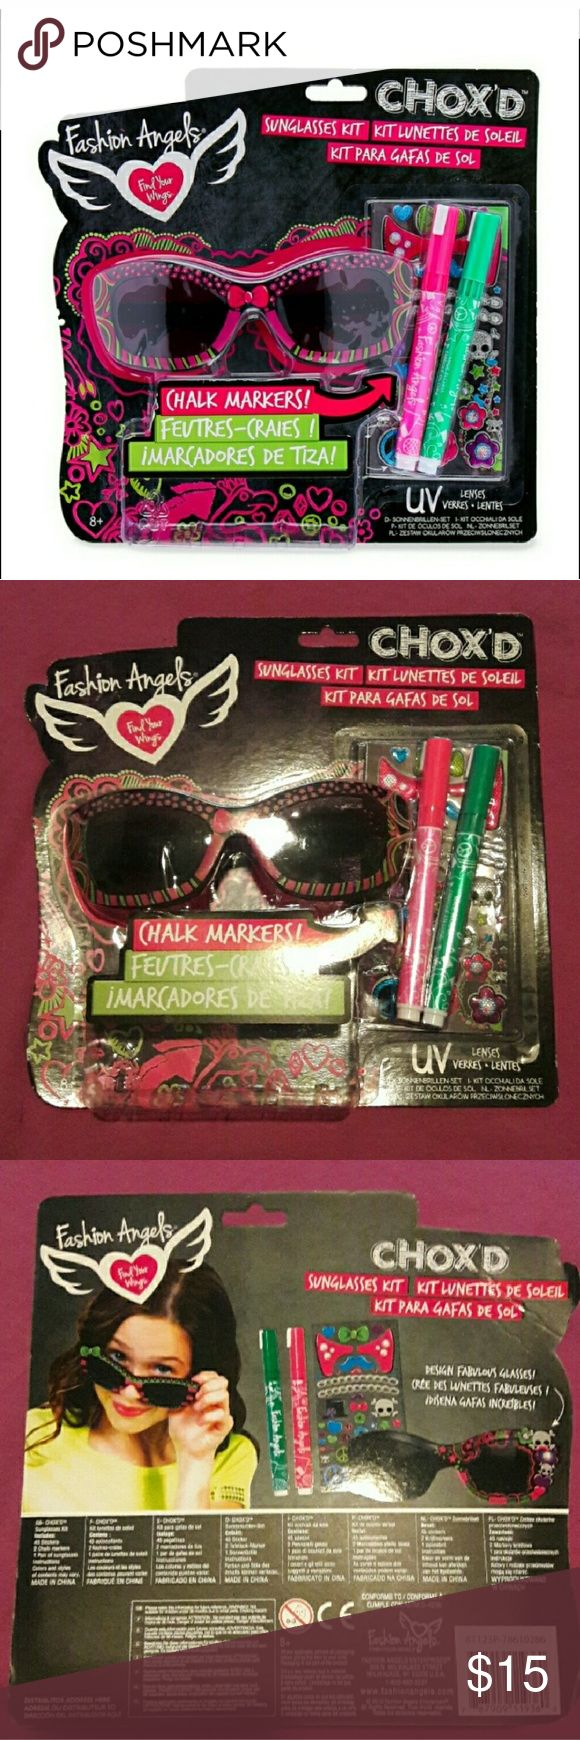 Kids Decorate Your Own Sunglasses Kit, Pink NWT + Surprise freebies with every order! +  NWT Brand new in box, never opened.  Kids can create their own custom designed sunglasses with this creative DIY kit from Fashion Angels. Perfect summer activity. This kit includes: - 1 pair of hot pink UV sunglasses - 2 Chalk markers in light pink & green - 45 glitter stickers  I've added some additional decorations. Plenty for multiple pairs of sunglasses.   * Bundle 3 or more listings and save 15%…